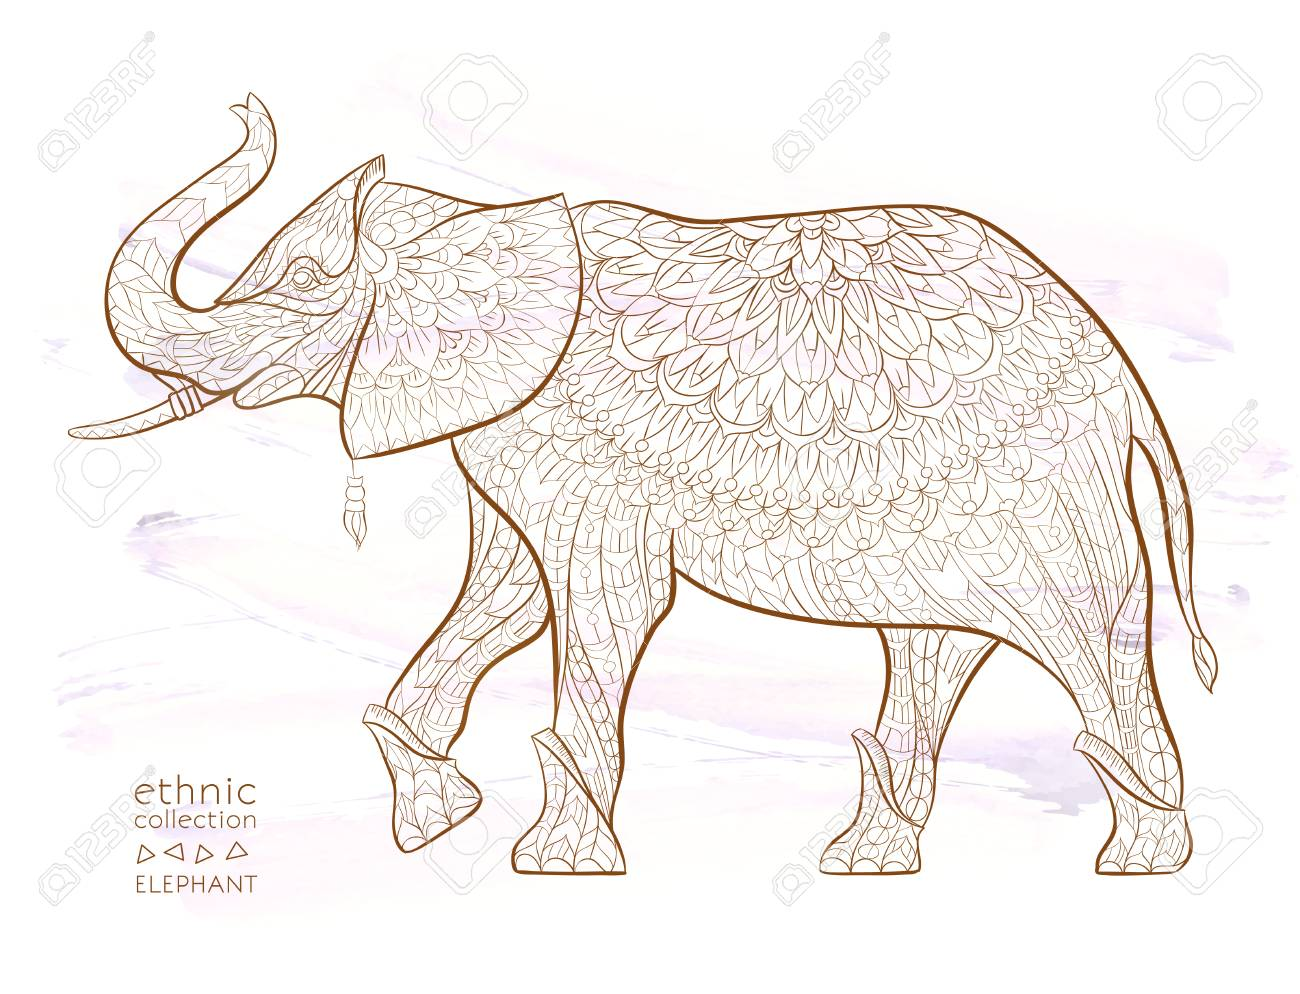 patterned elephant on the grunge background african tattoo